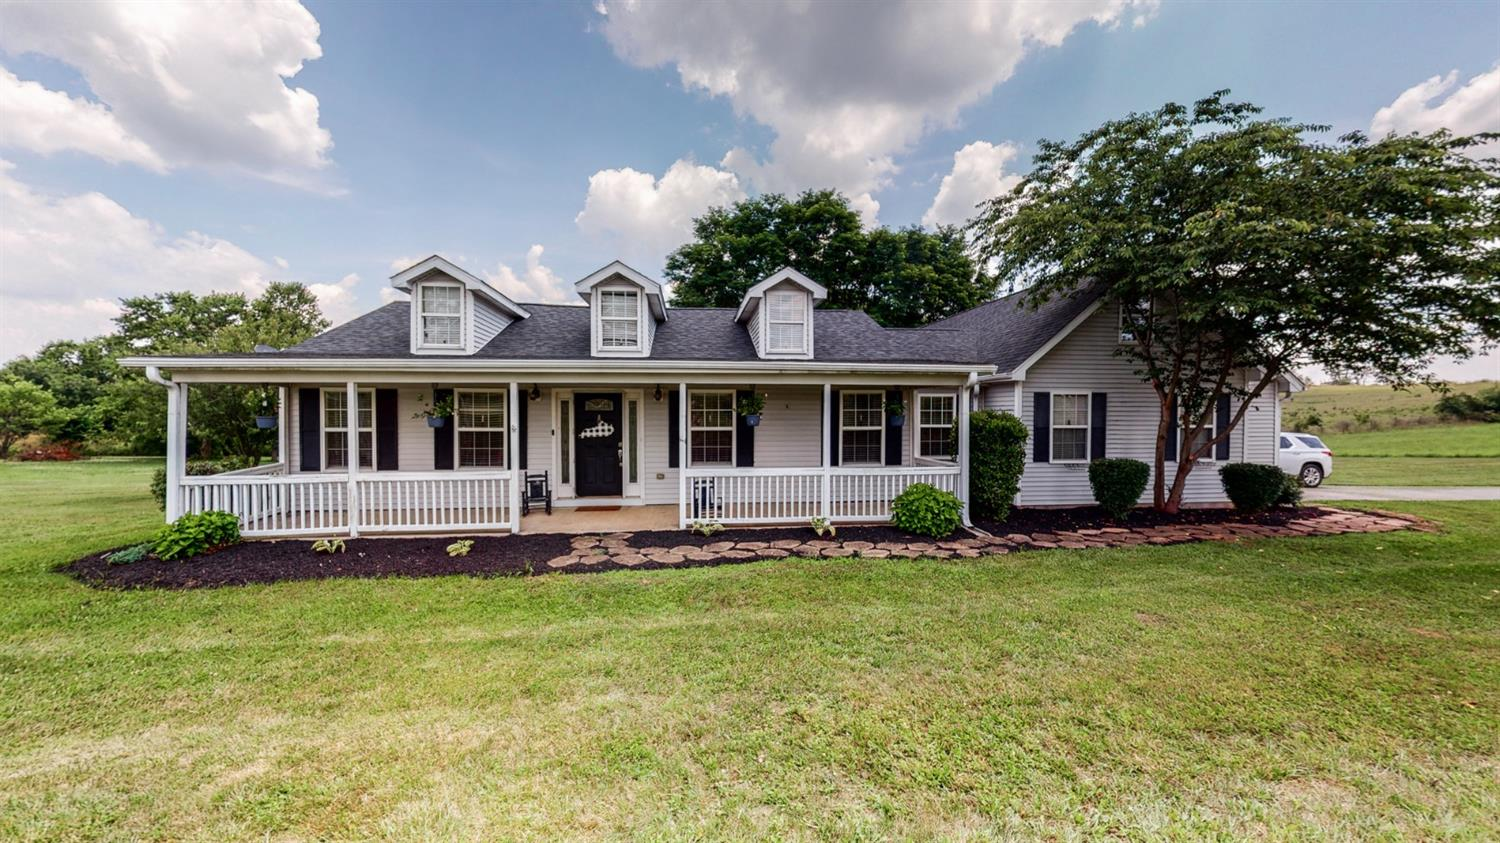 2245 Big Stoner Rd, Winchester, KY 40391